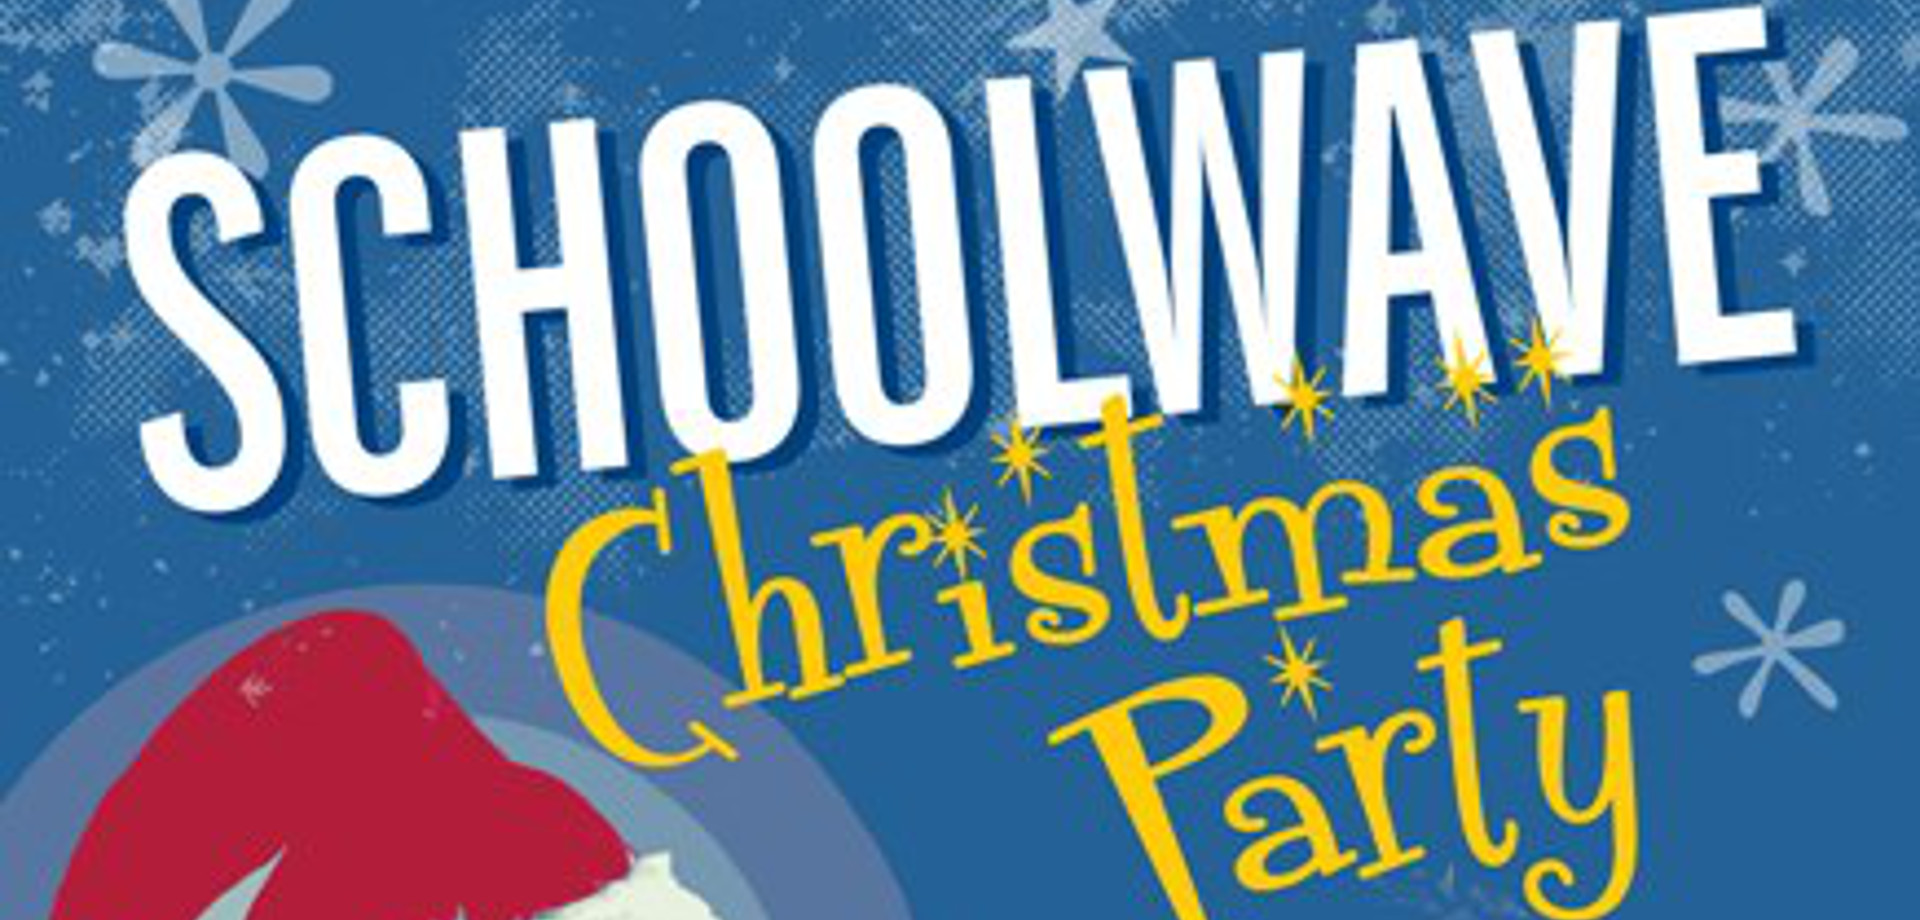 Schoolwave Christmas Party